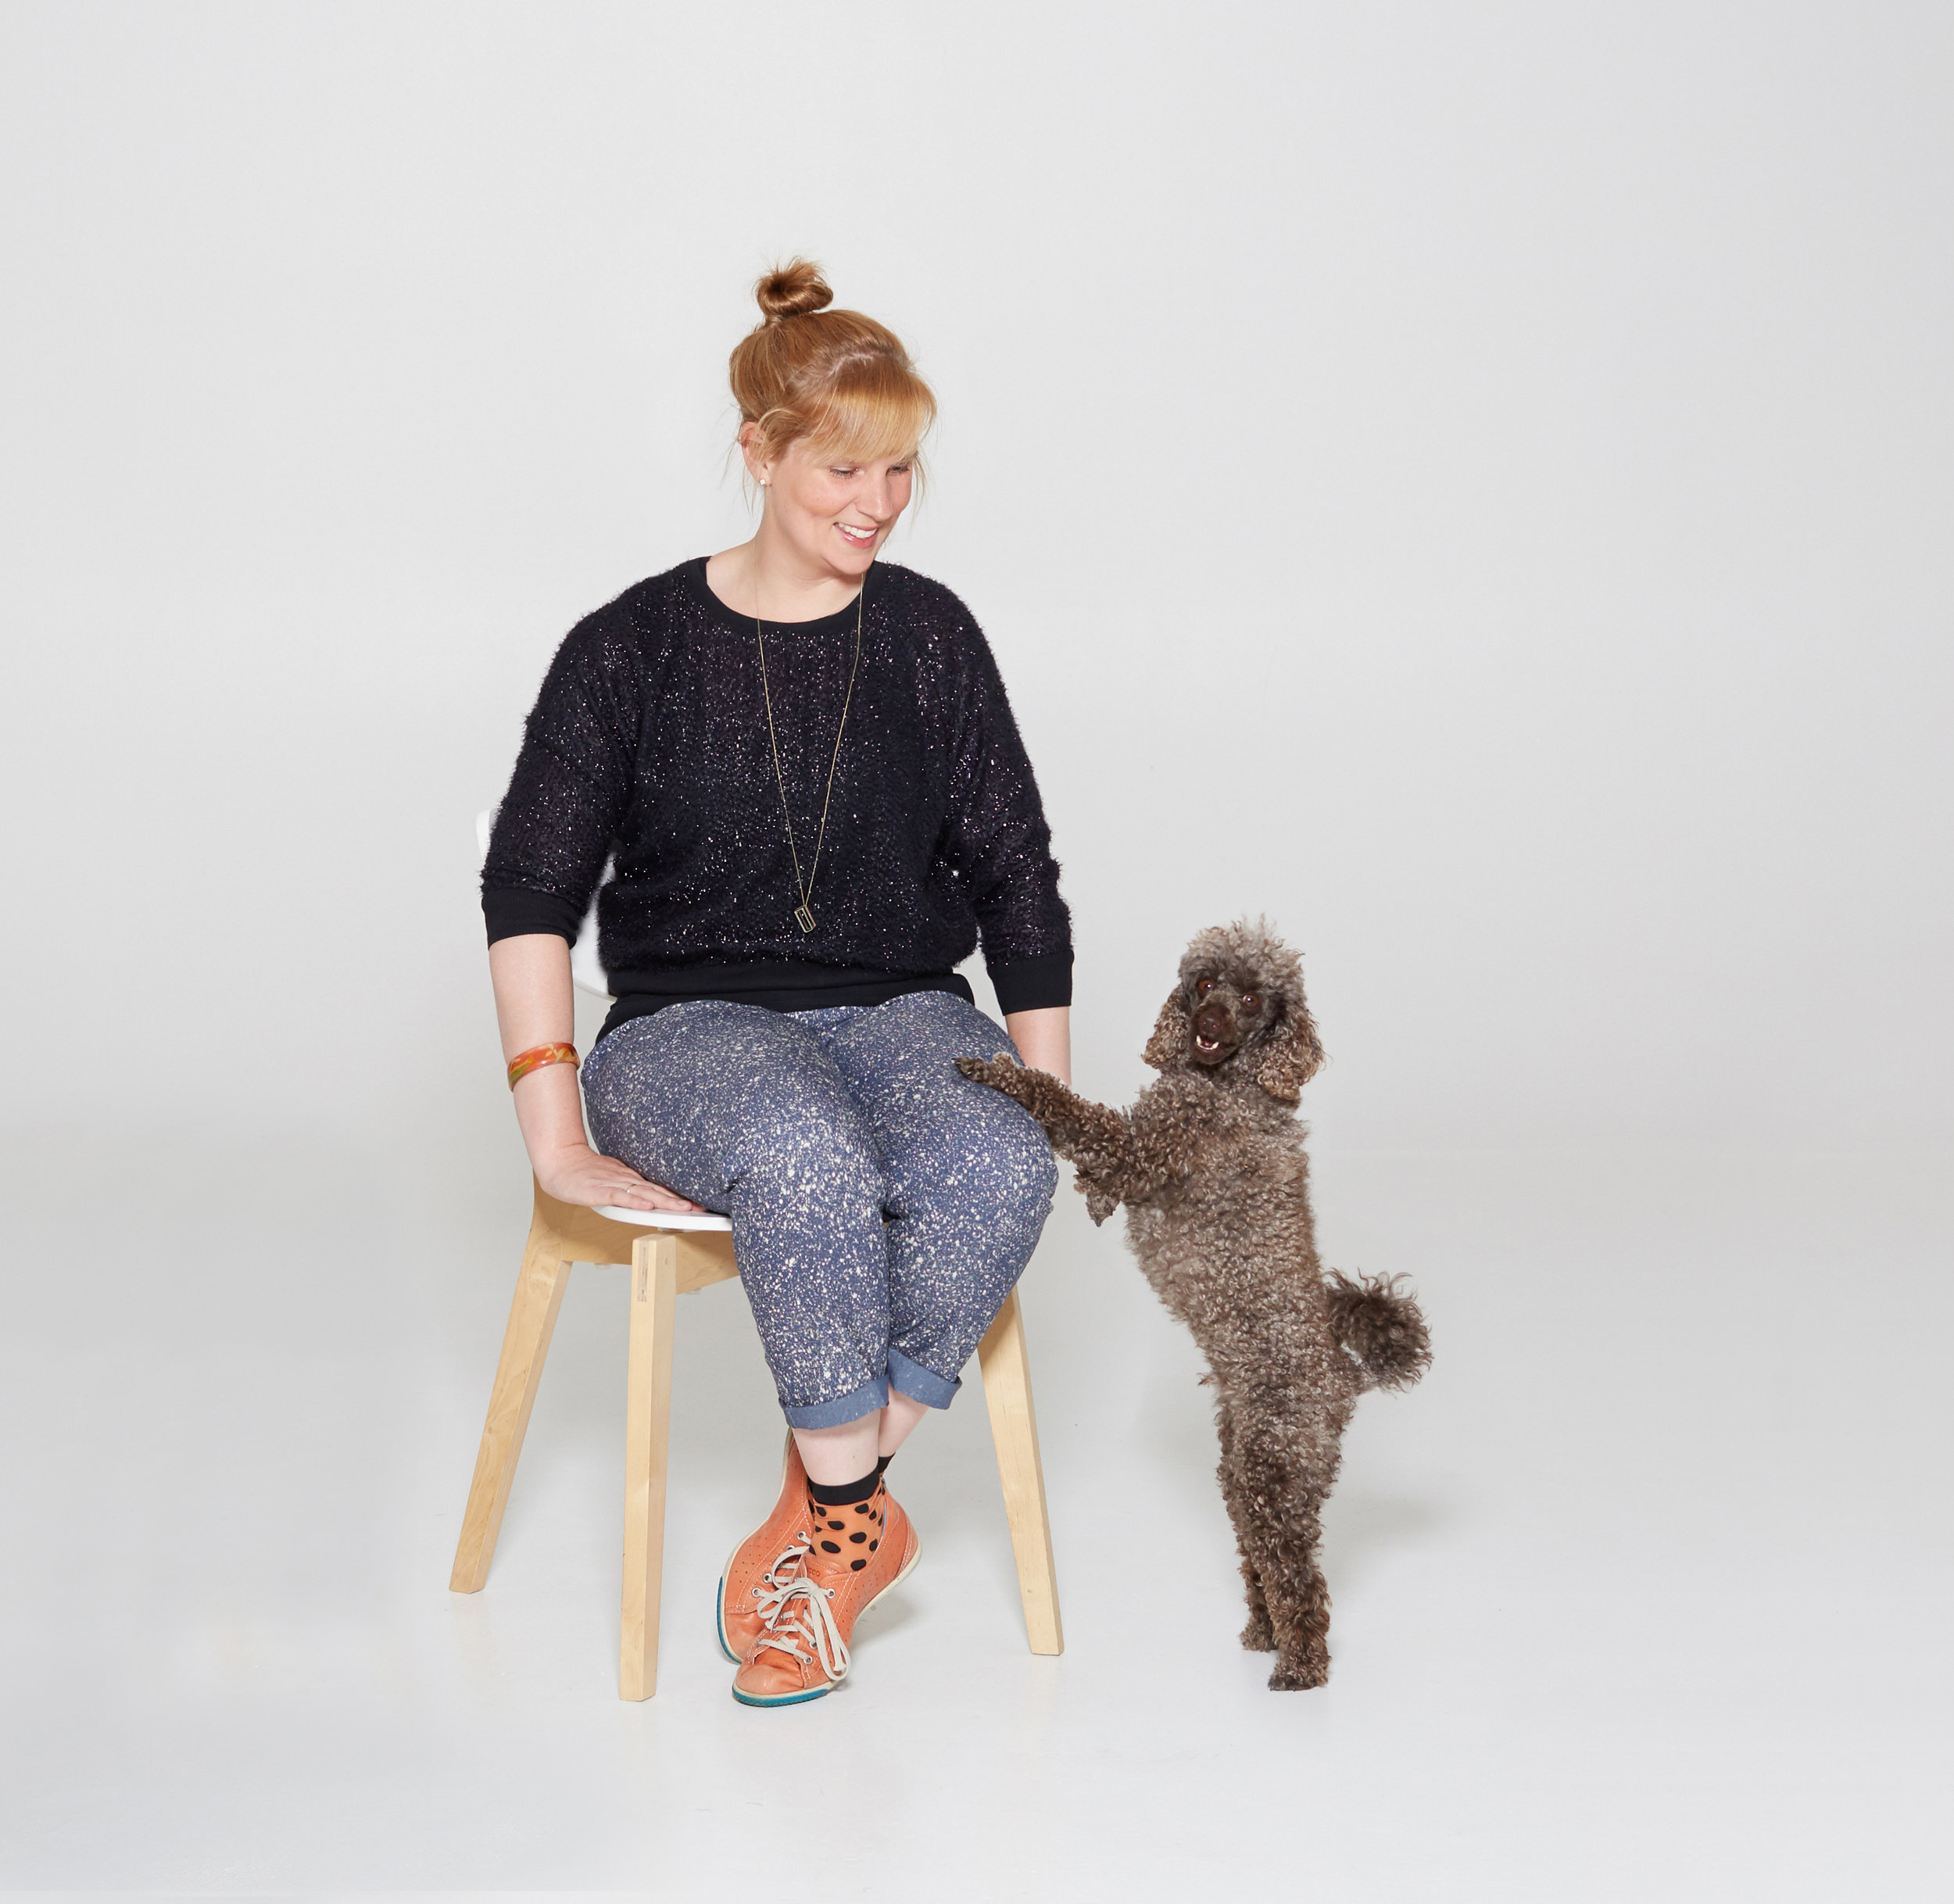 Chelsea, founder of halló cameo and assistant, toy poodle, Benji.